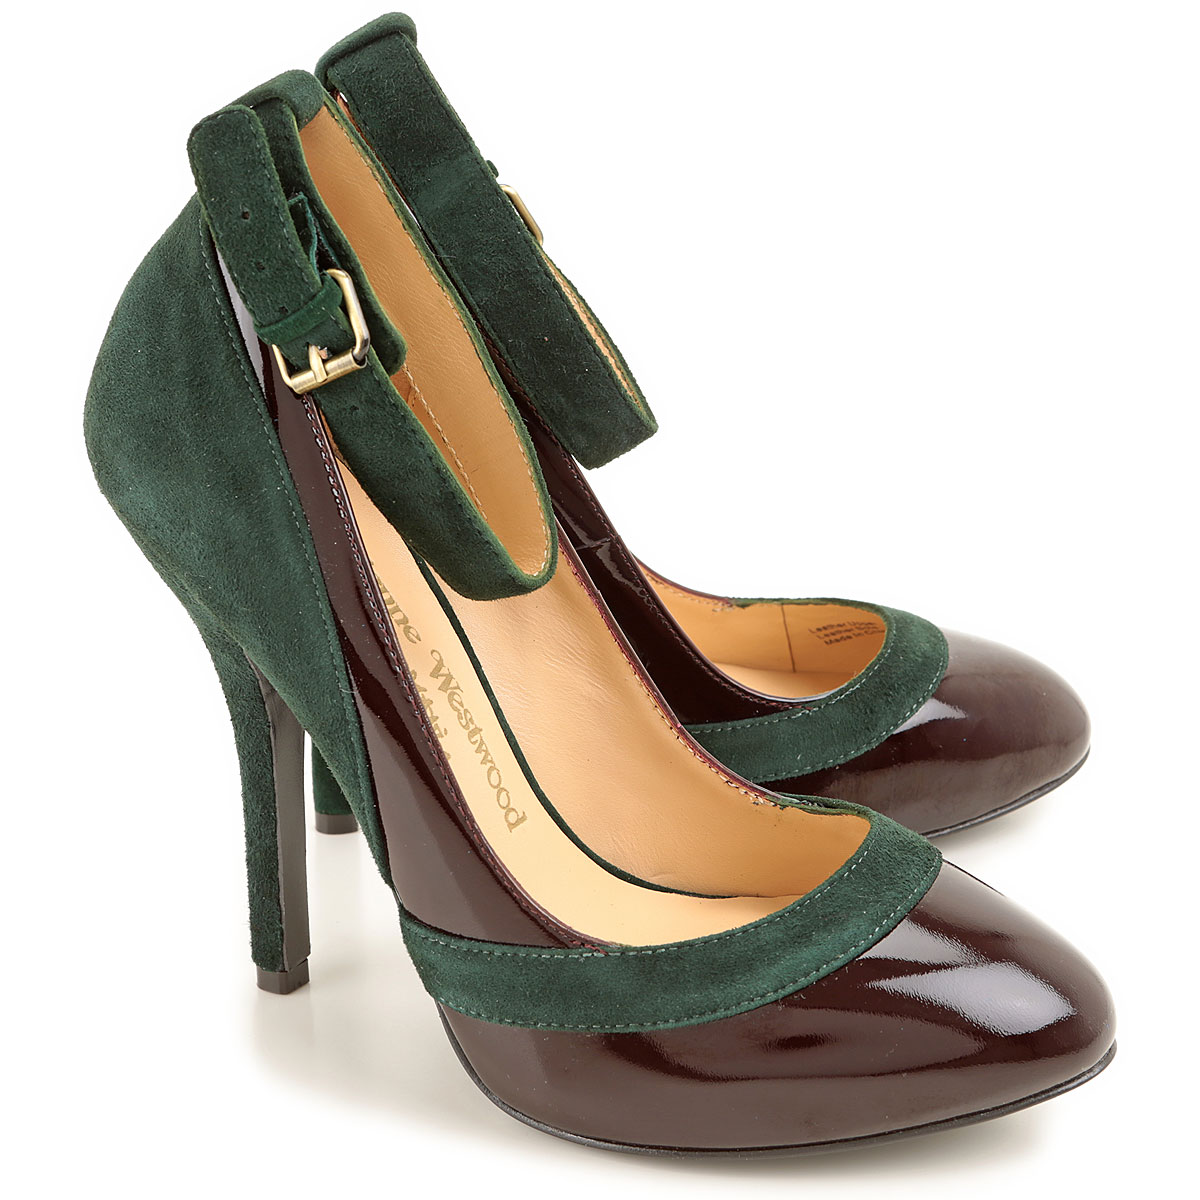 Vivienne Westwood Pumps & High Heels for Women in Outlet Forest Green USA - GOOFASH